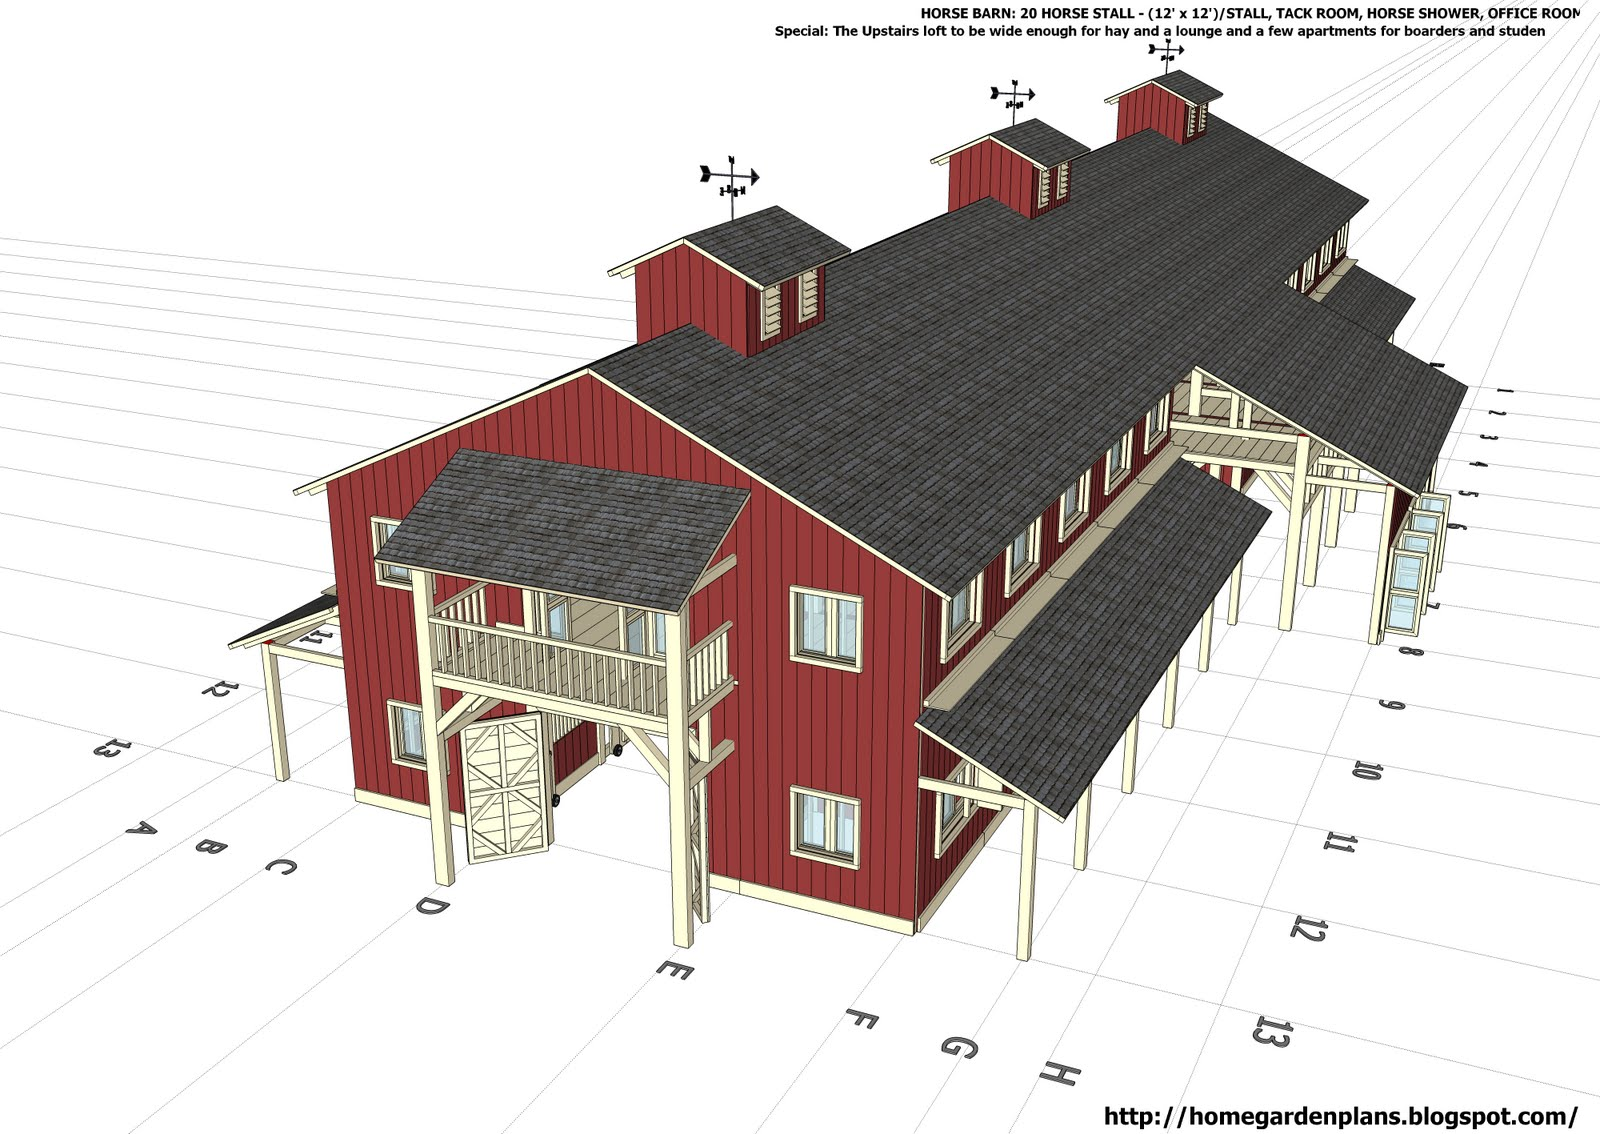 2 horse barn plans Blueprints for barns